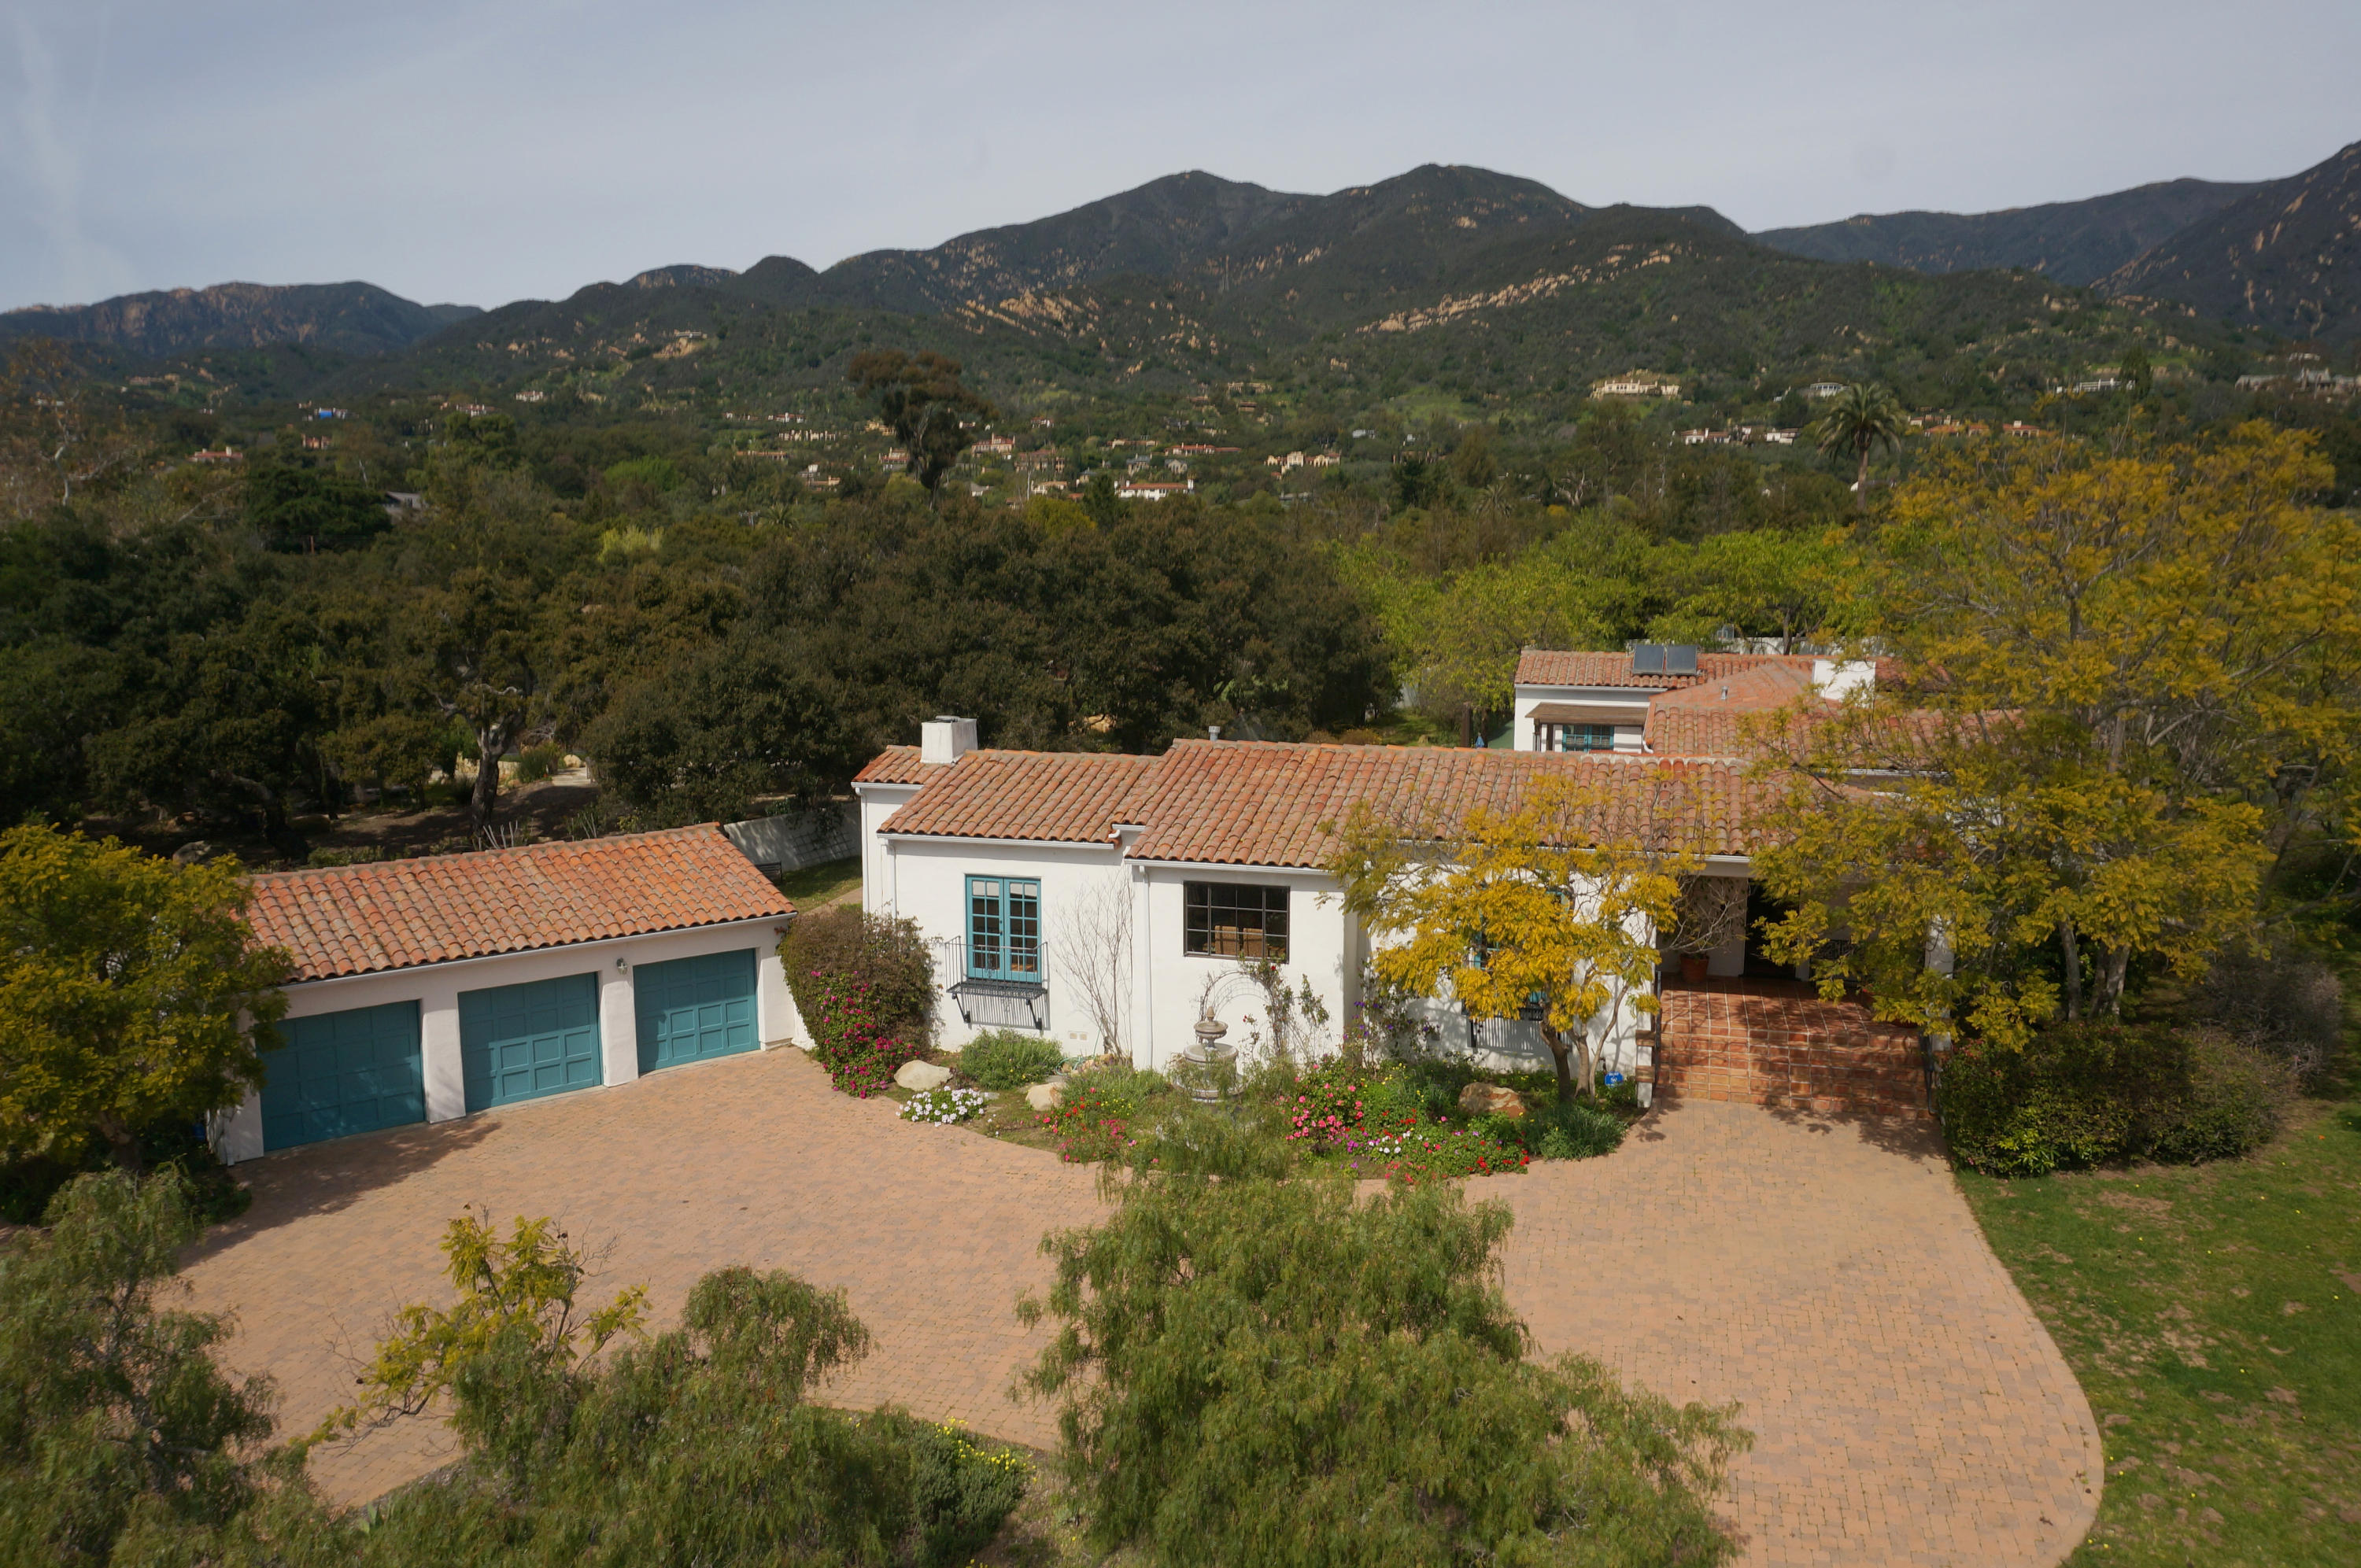 Property photo for 1520 Bolero Dr Santa Barbara, California 93108 - 17-750